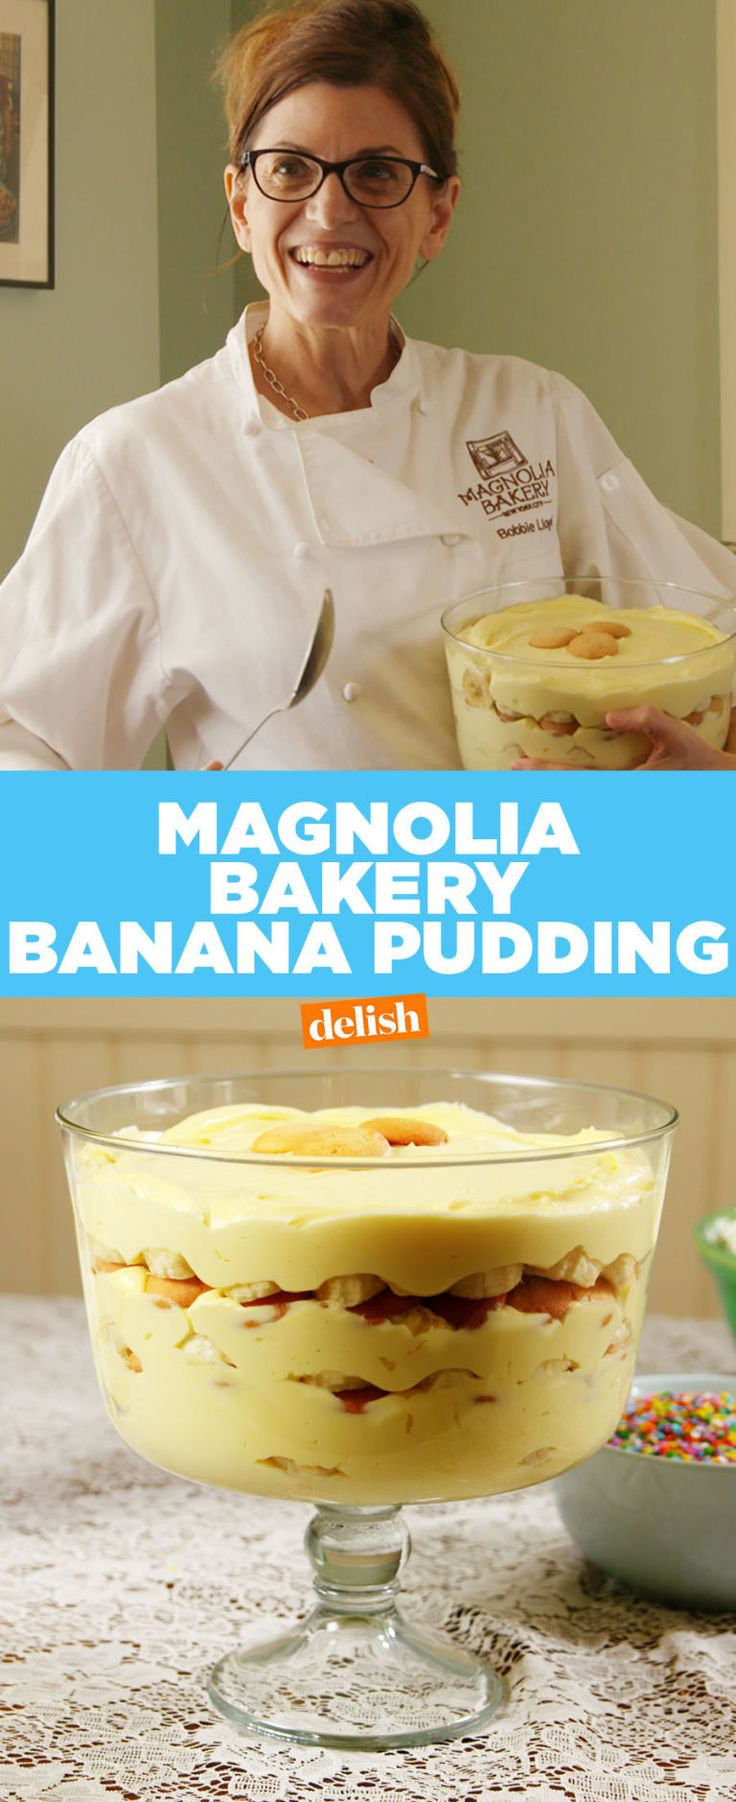 Magnolia Bakery Spills The Secrets To Its Famous Banana Pudding